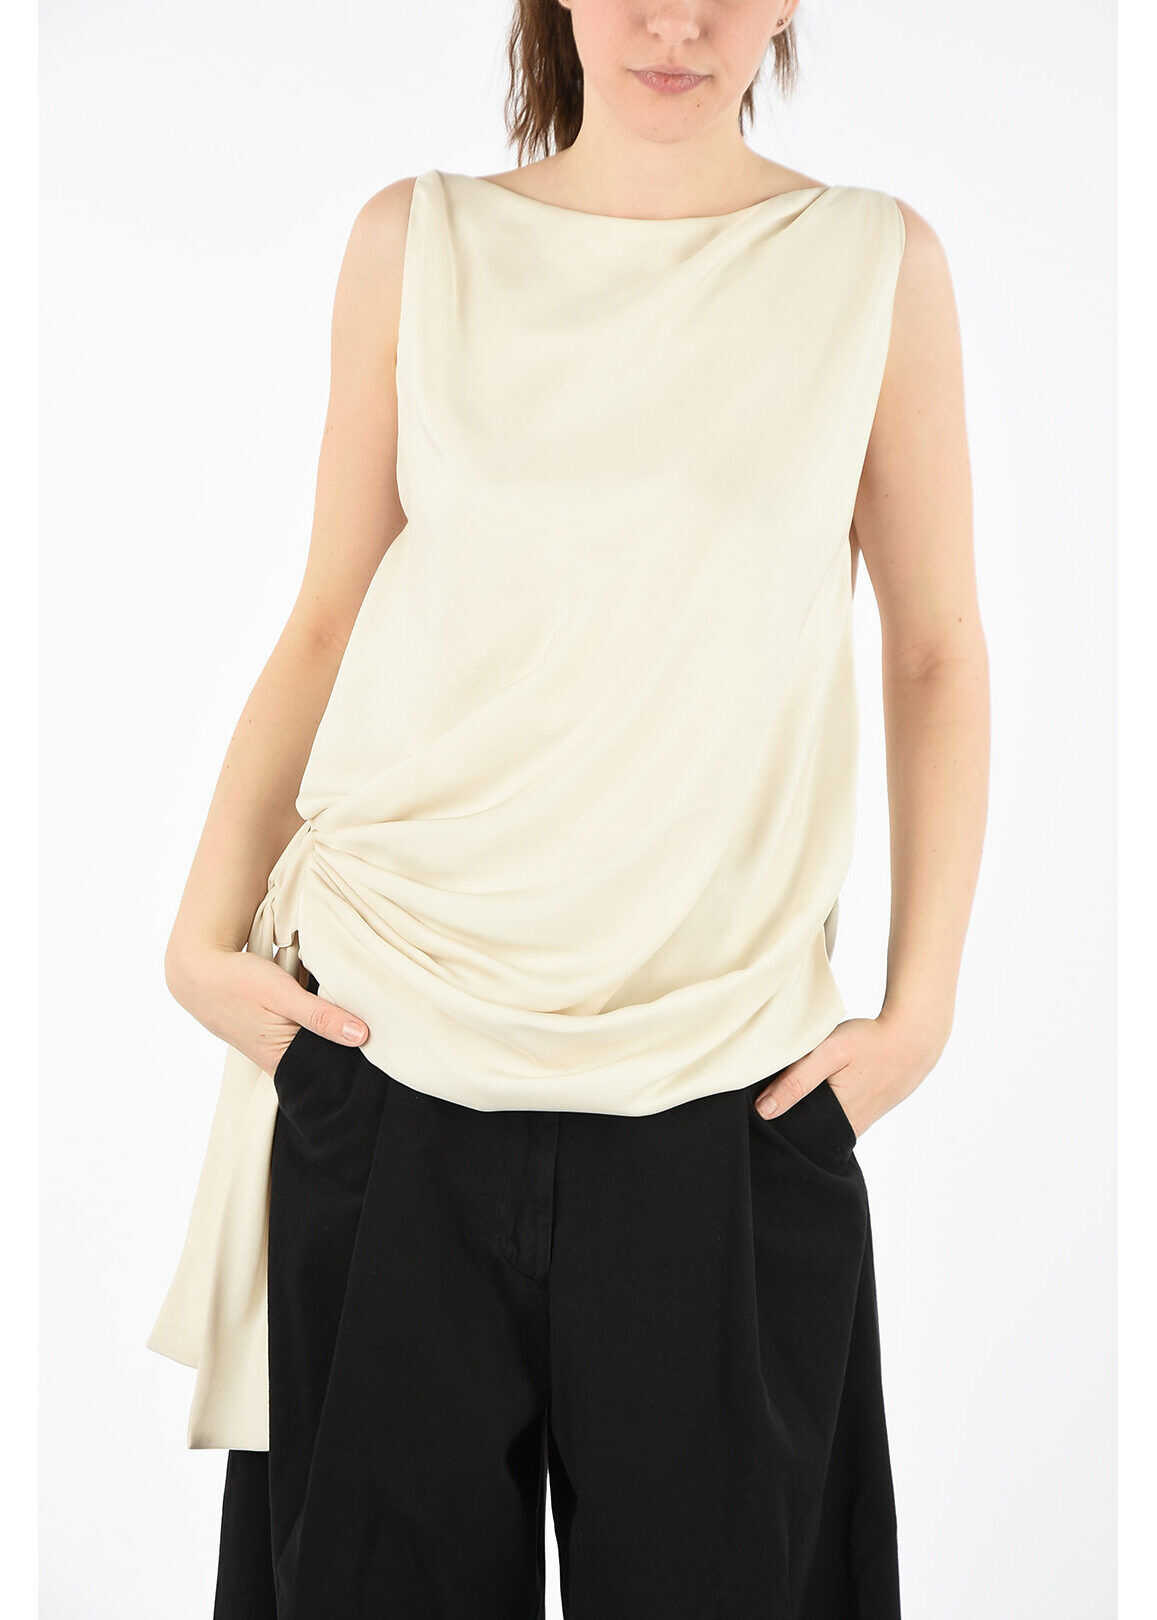 Tom Ford Top with Bow BEIGE